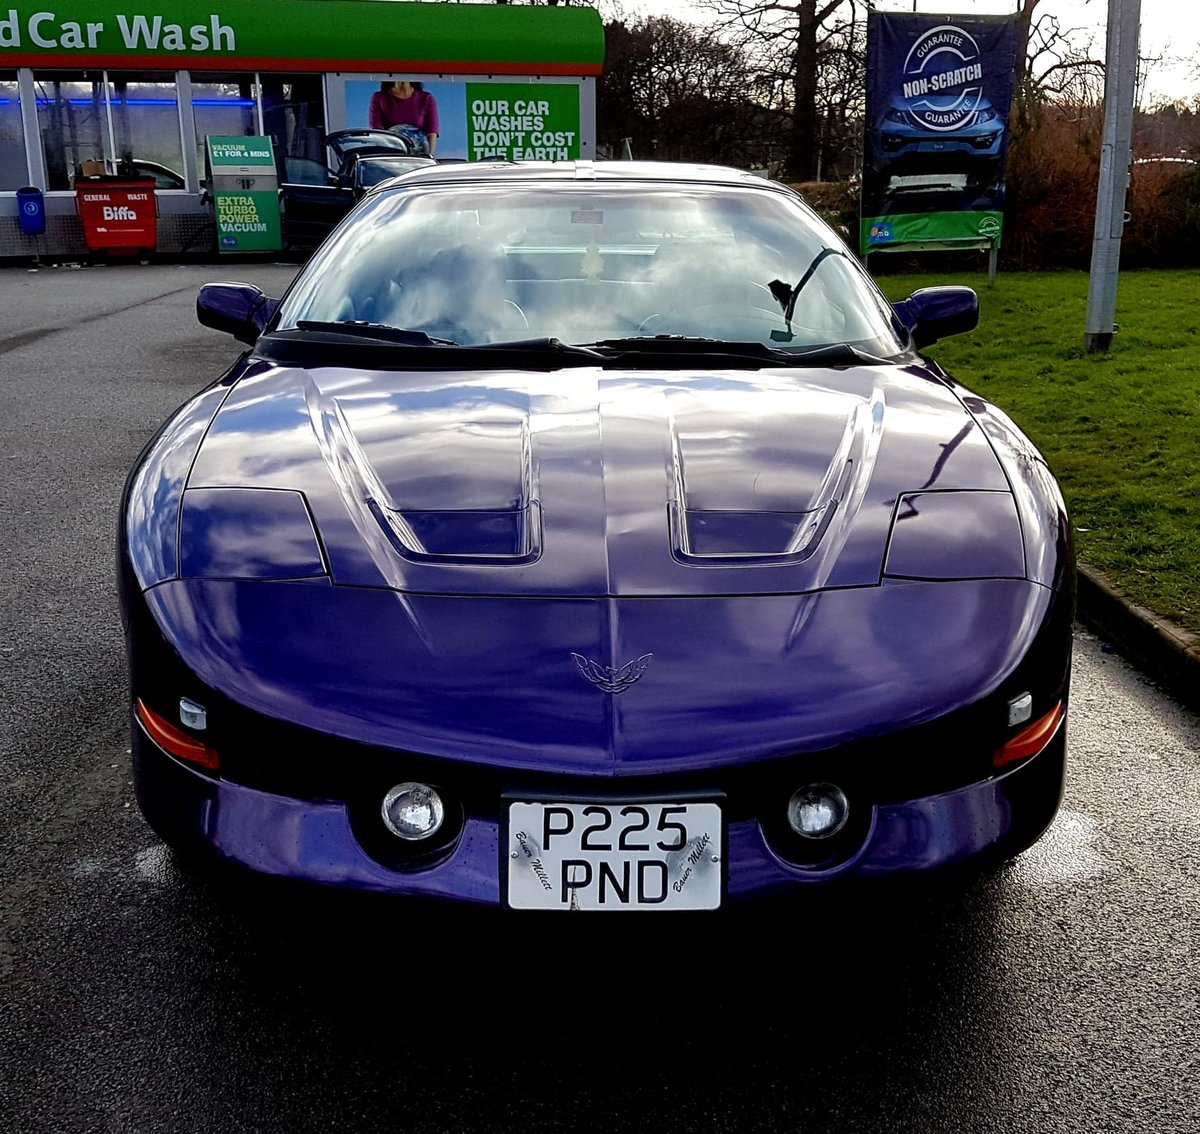 1997 Pontiac  Trans Am 5.7 V8 very clean car For Sale (picture 5 of 8)